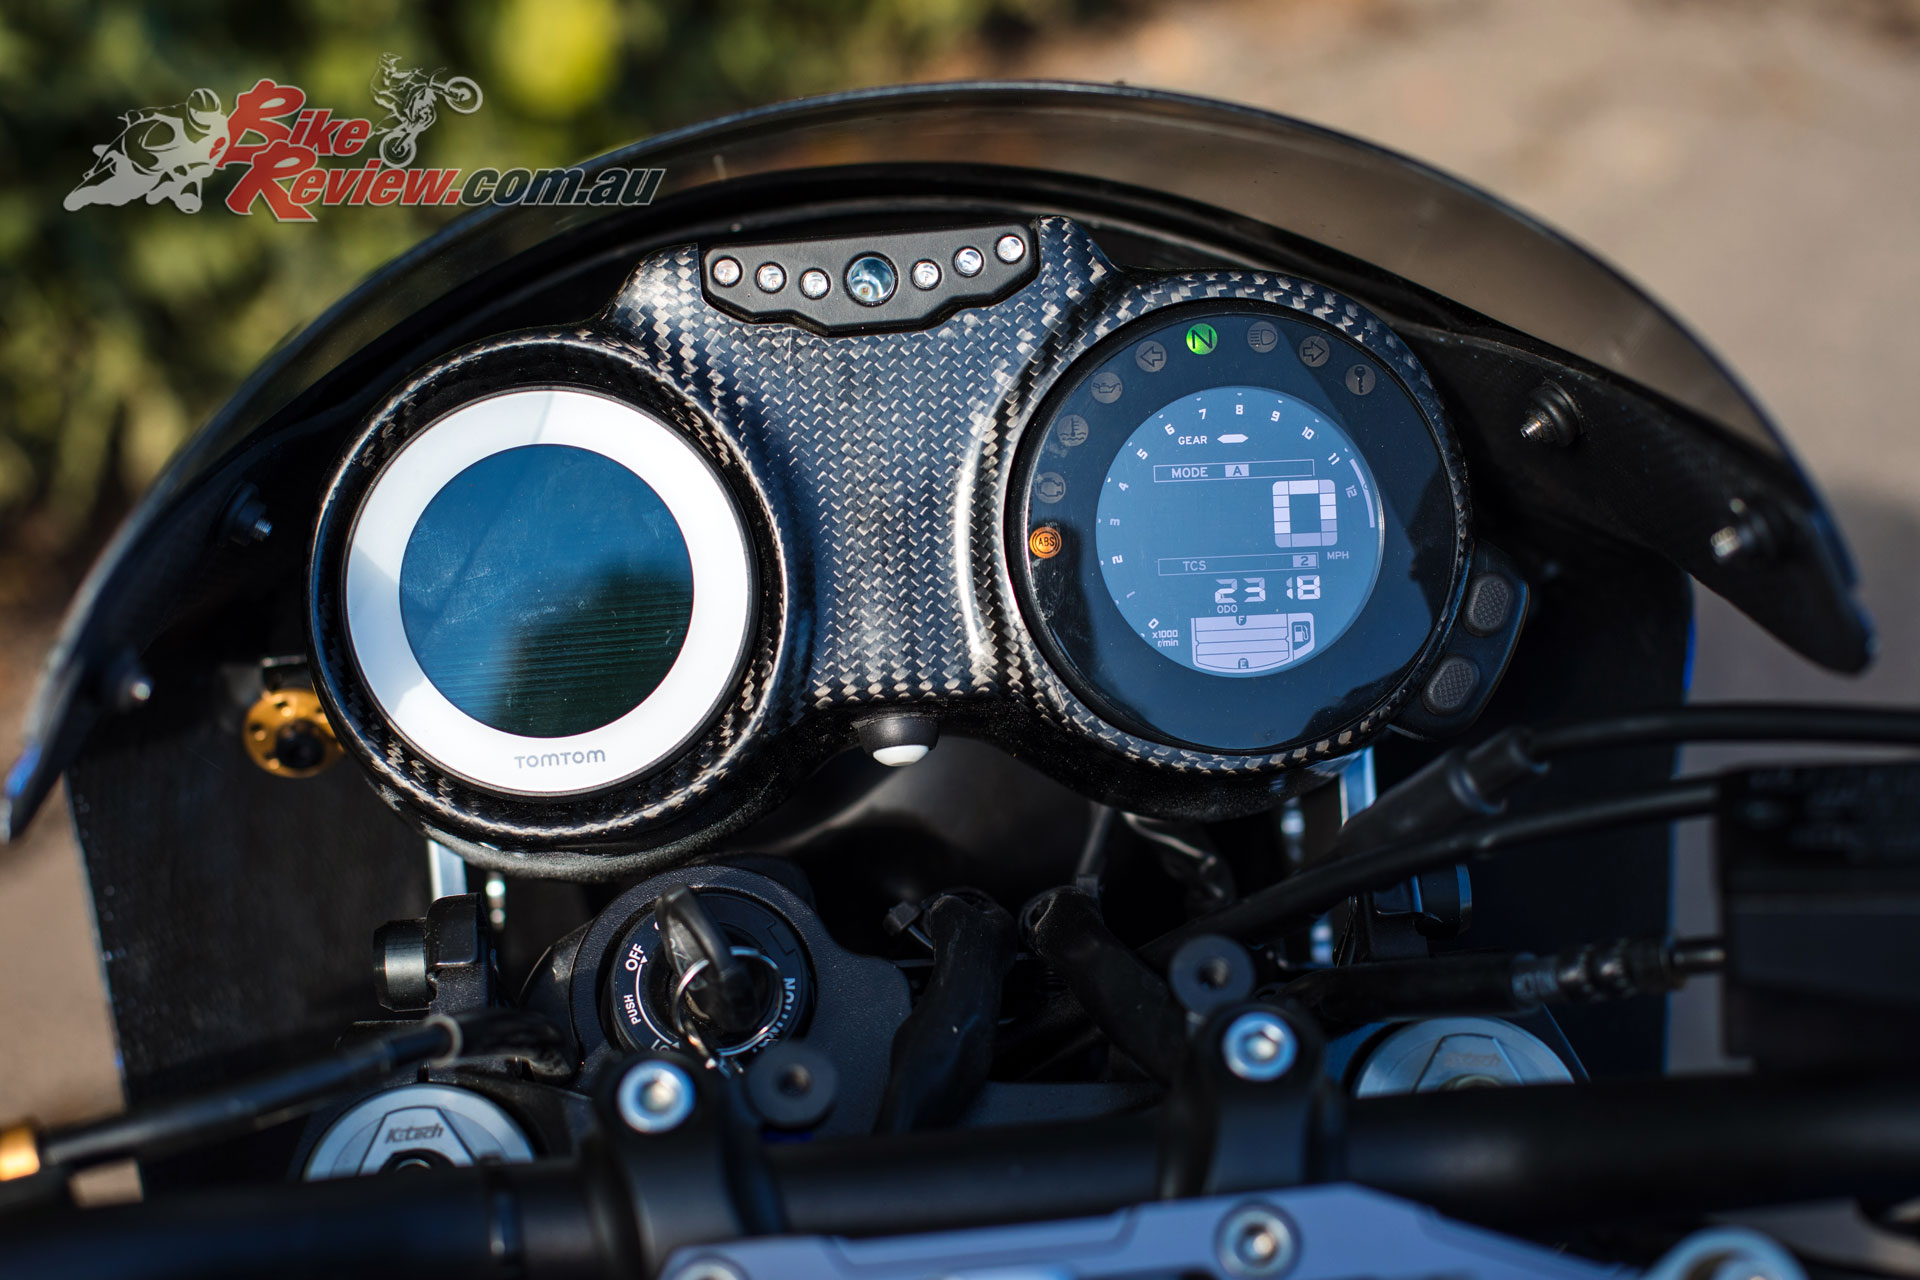 Dual clocks on the Moto Velocity use the stock XSR instruments and a TomTom GPS